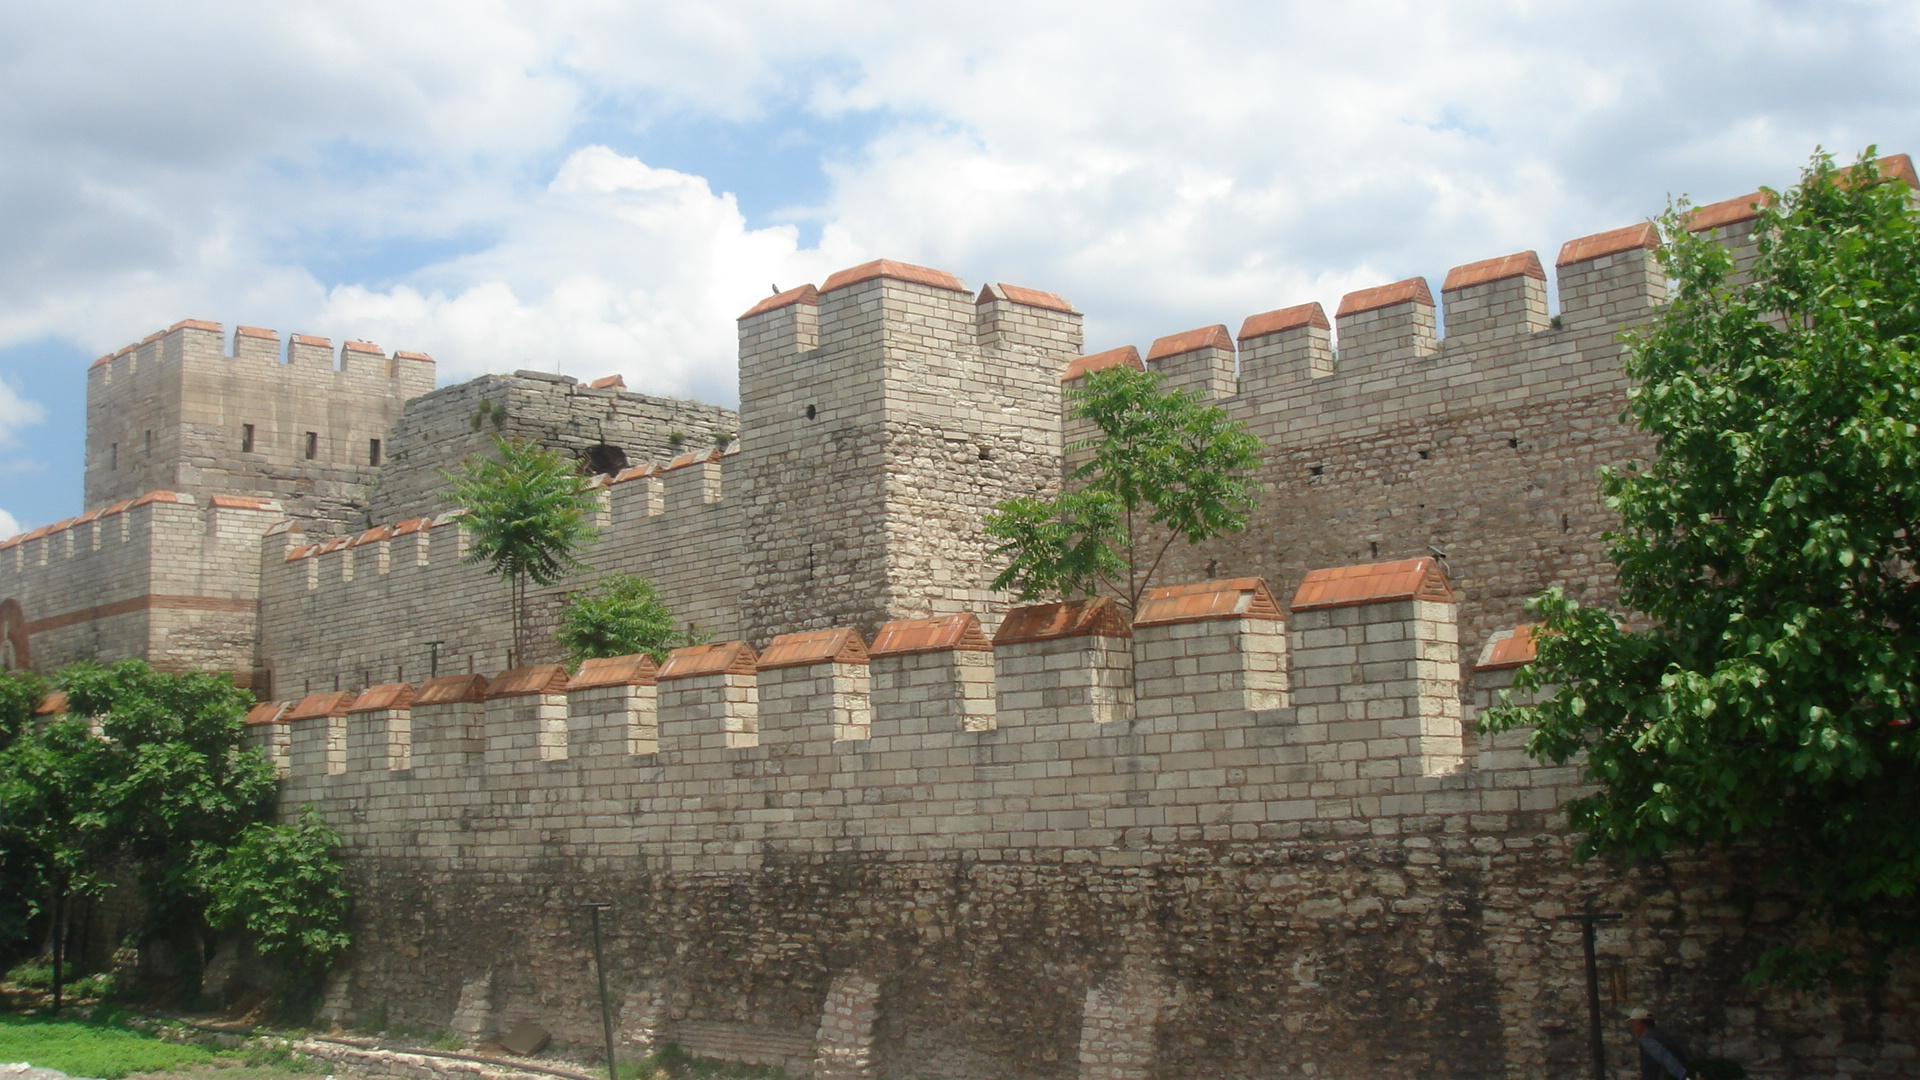 File:Walls of Constantinople.JPG - Wikipedia